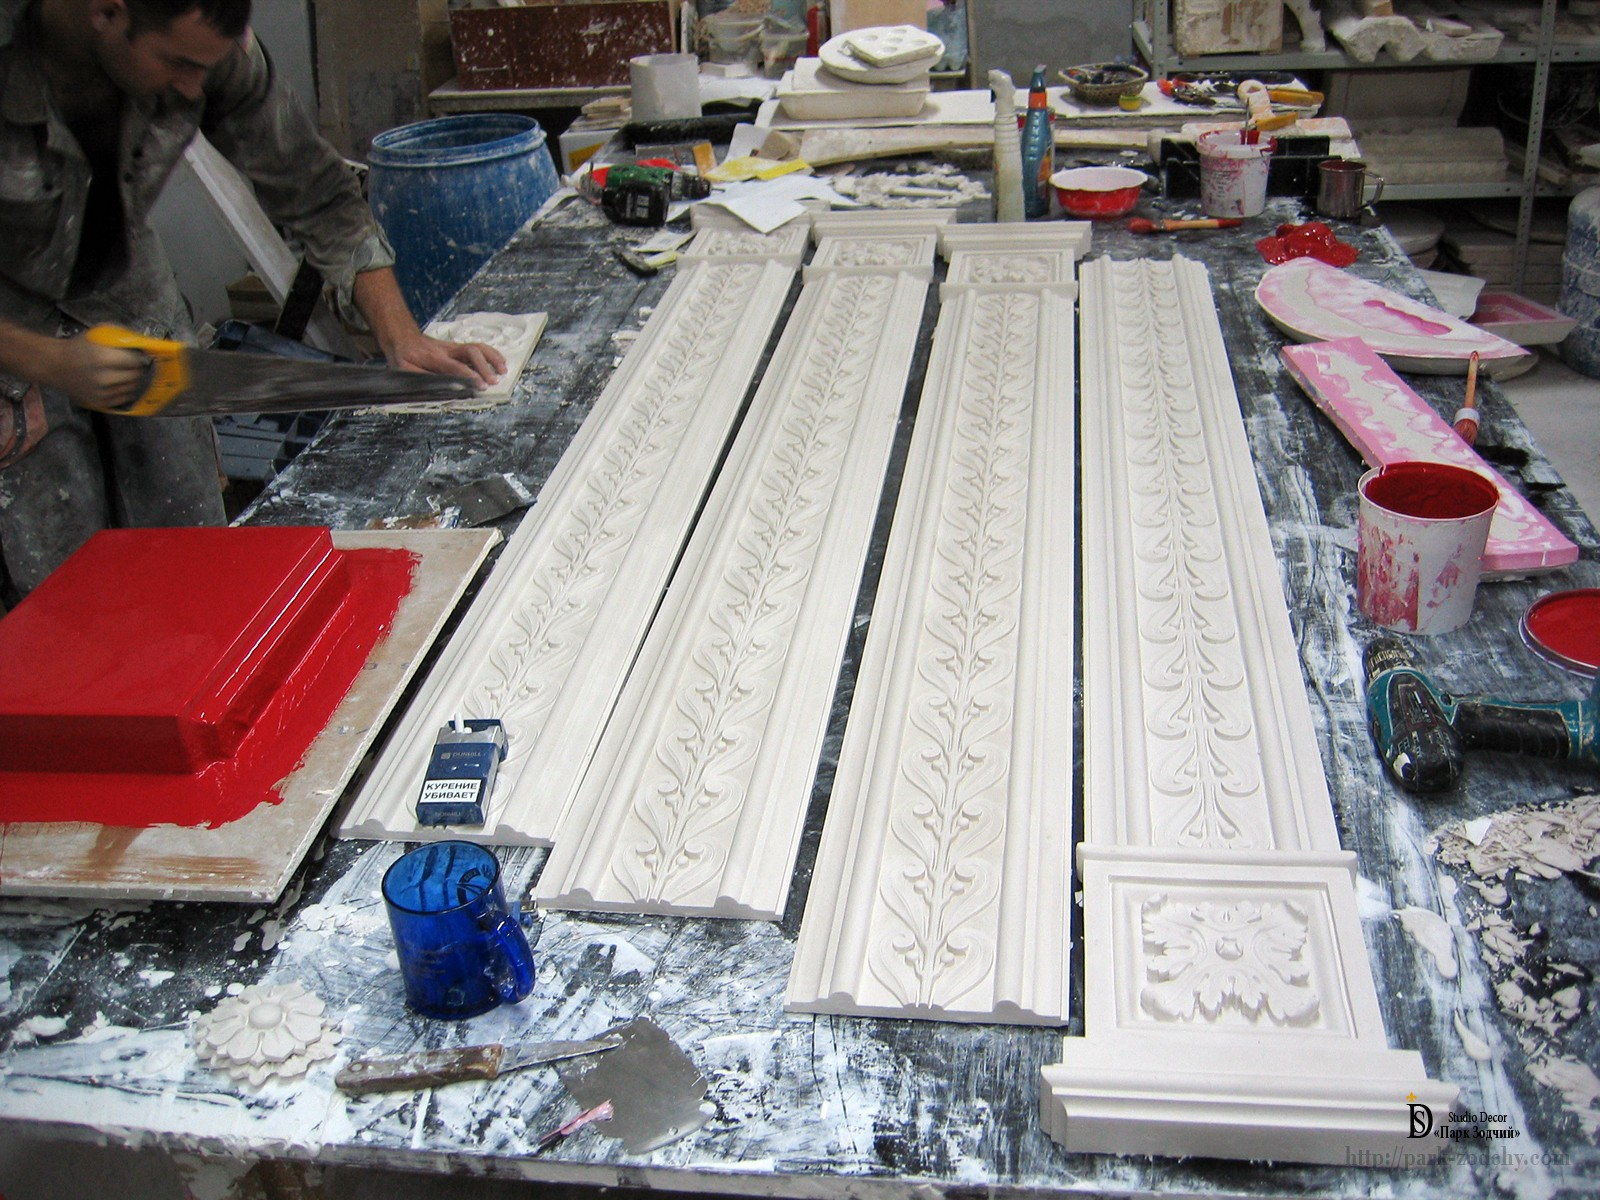 manufacturing plaster moldings in the workshop